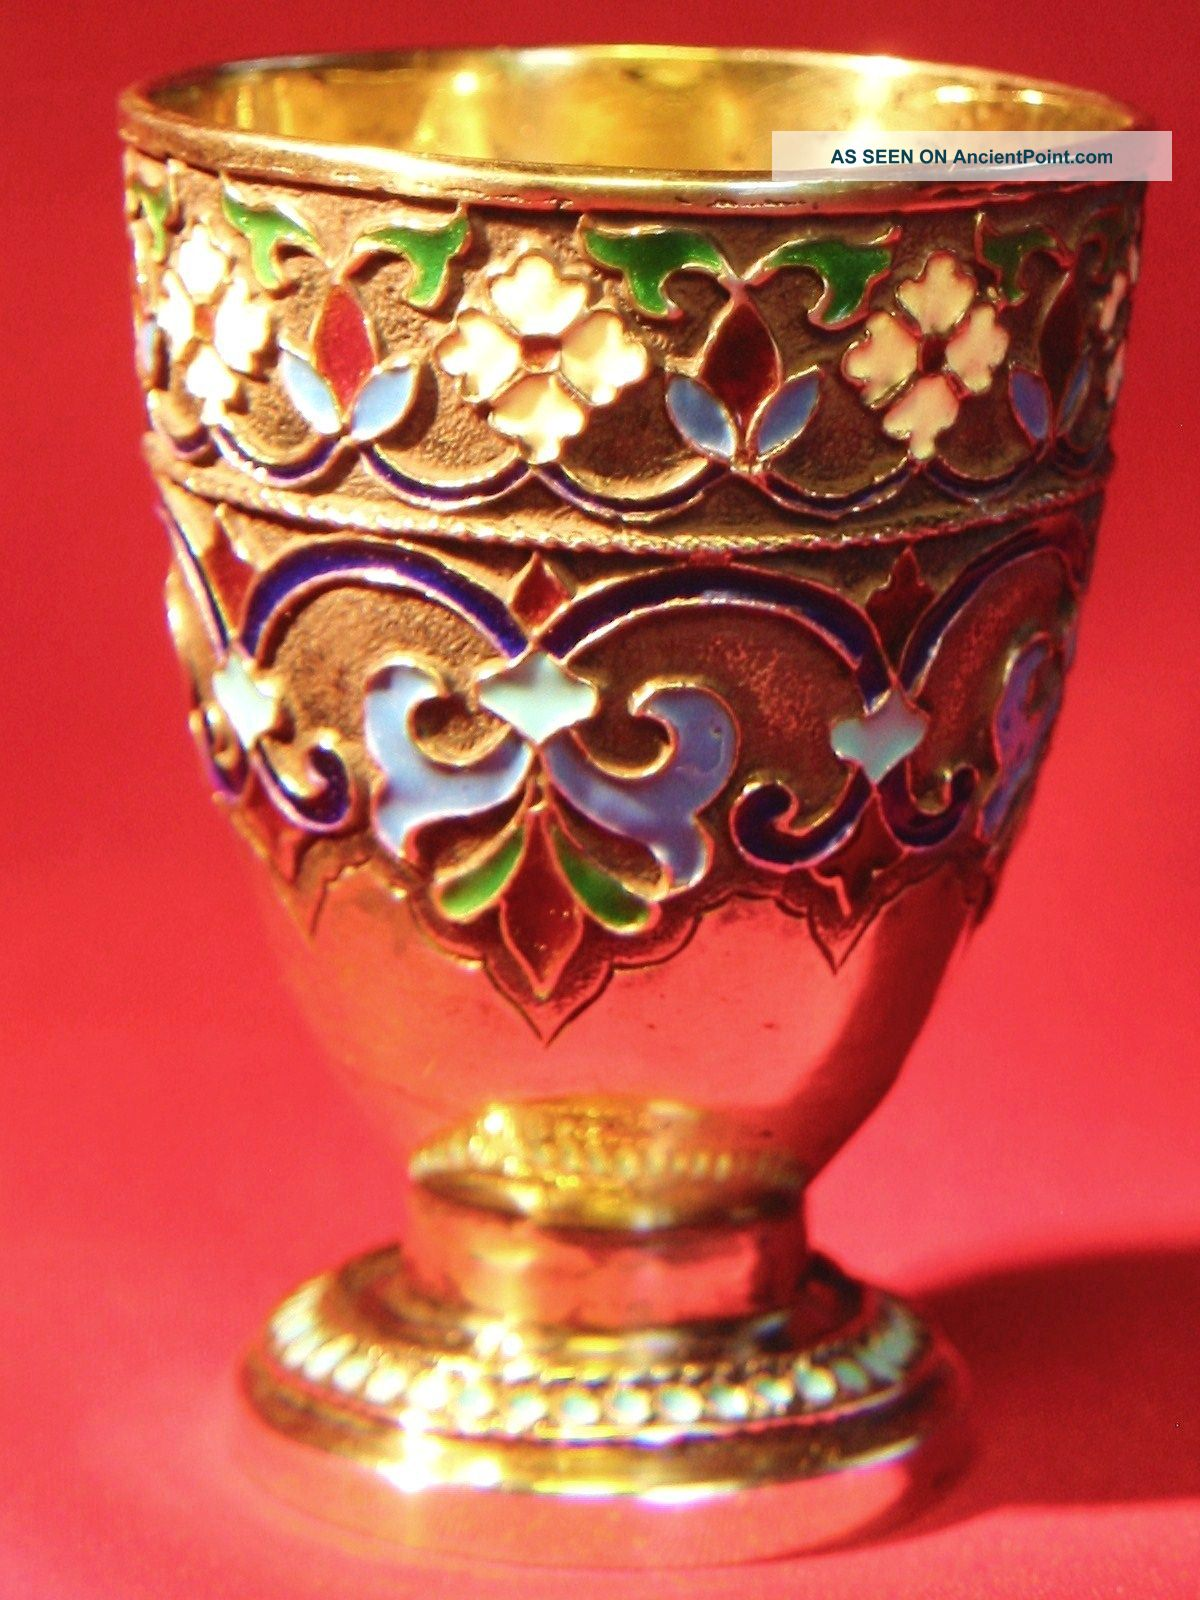 Antique 19c Imp.  Russian 88 Silver & Enamel Vodka Cup By Maria Adler (1879 - 1882) Russia photo